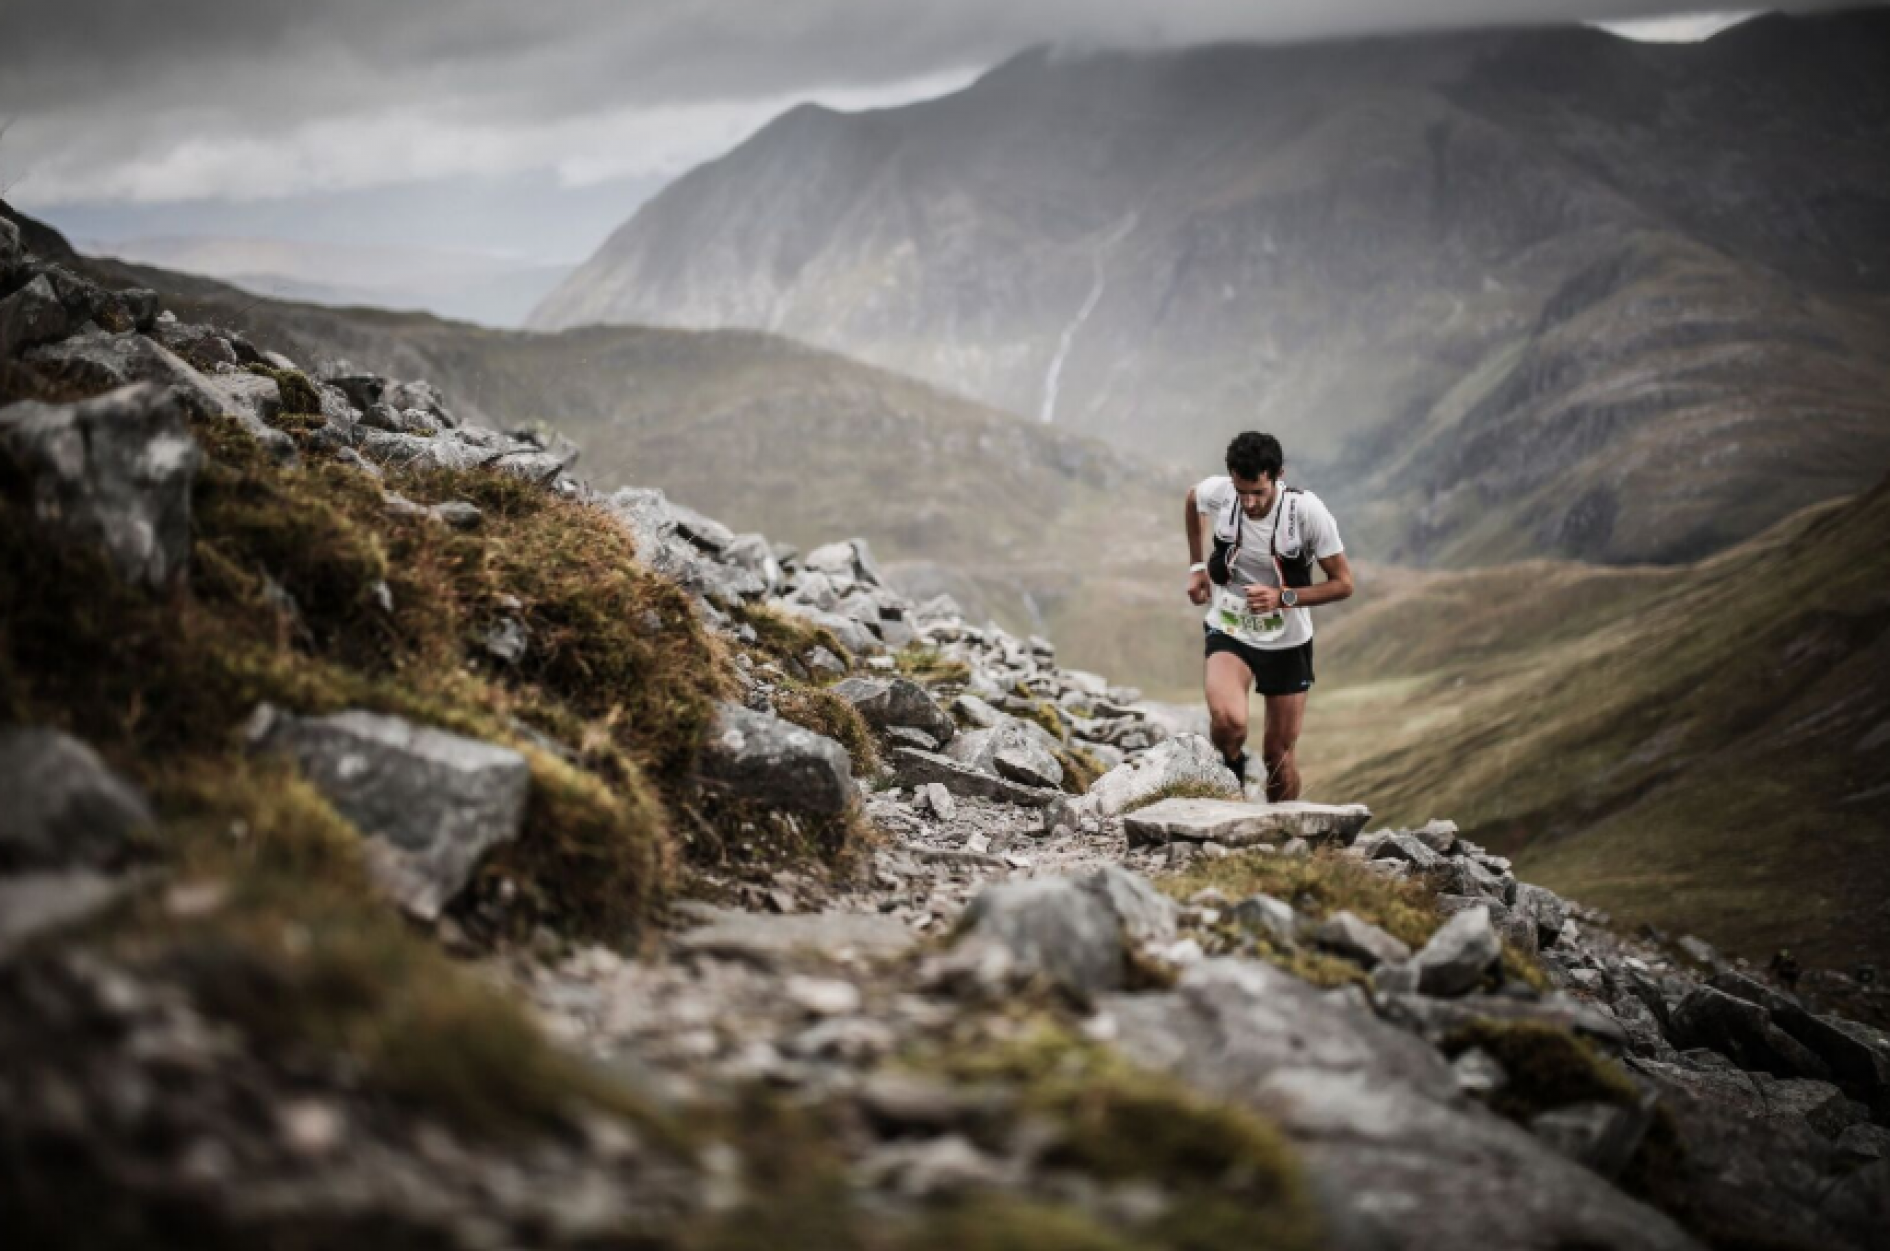 Kilian Jornet is World Skyrace champion and goes to the final of the Golden Trail Series